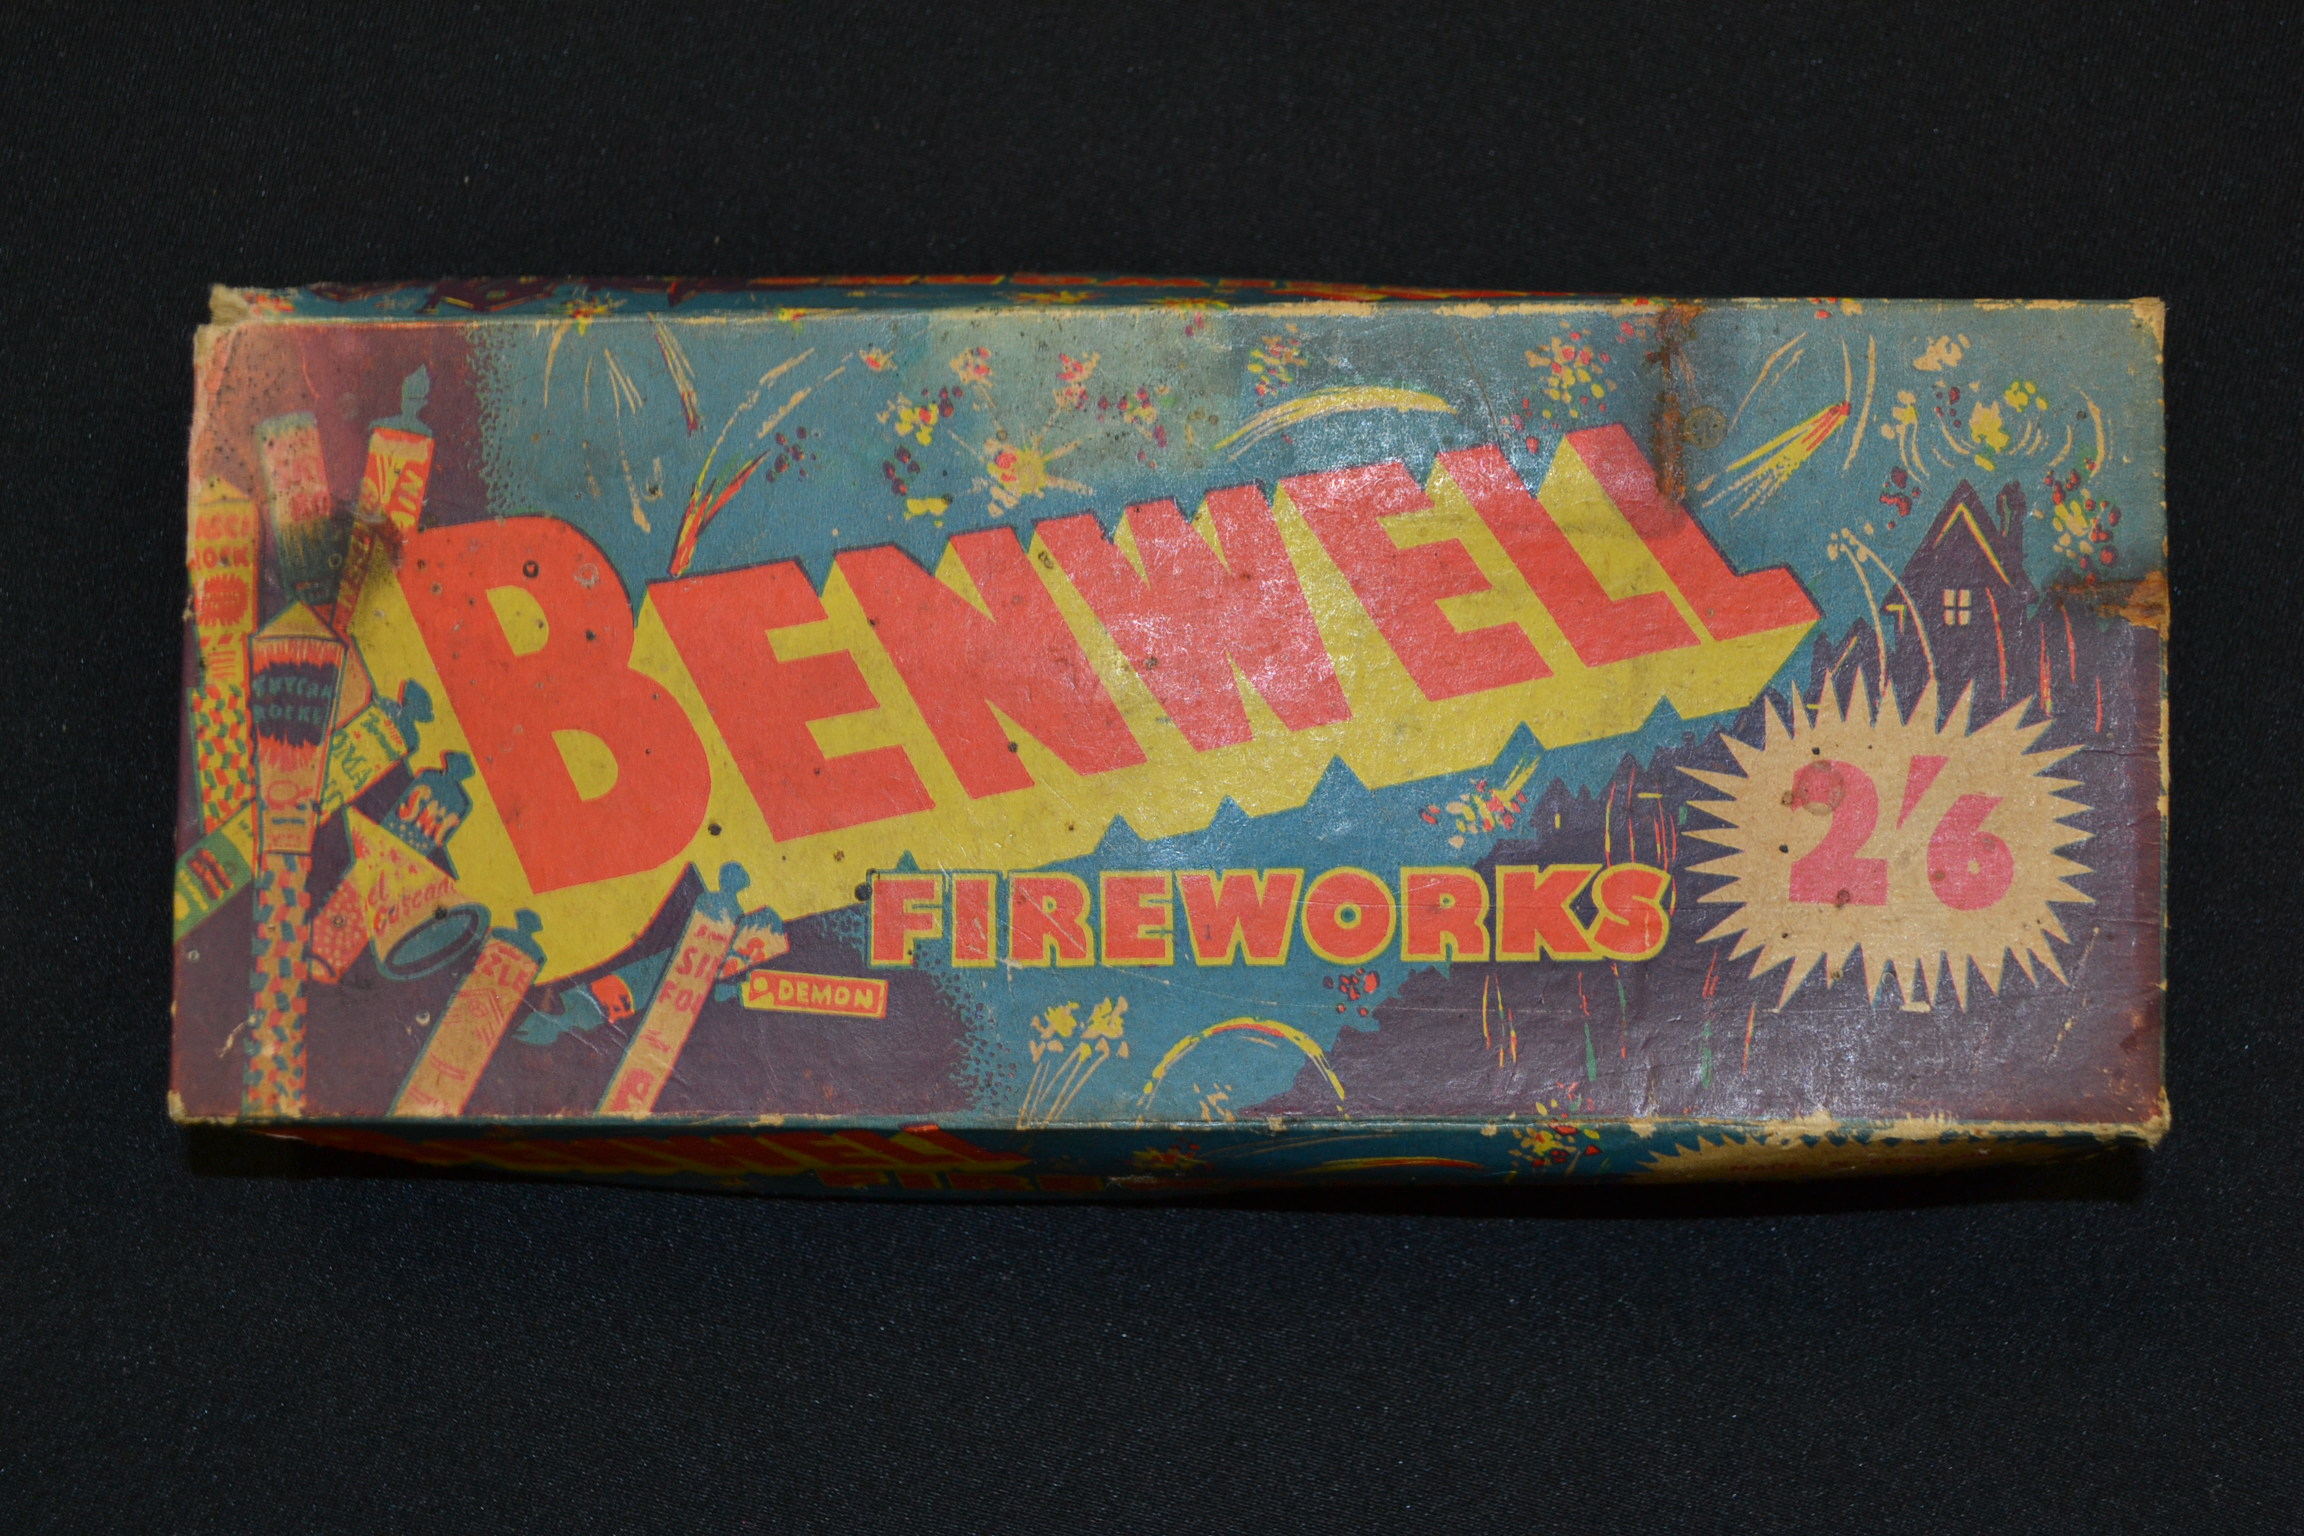 A box of vintage unused  1950's fireworks by Benwell. Made in England by Haley & Weller Ltd,